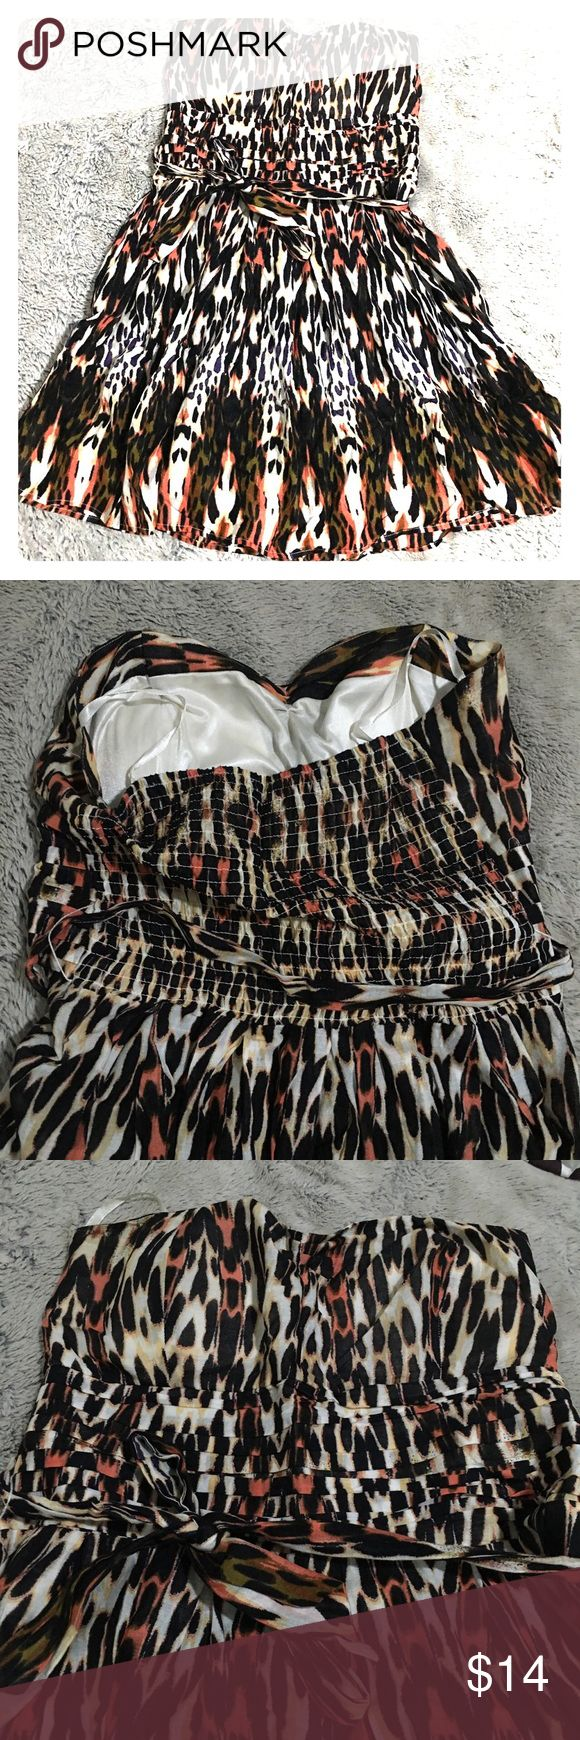 Leopard animal print dress Strapless vintage looking house wife swing fitted bustier sweat heart pin up rockabilly tie up dress  Size: medium  Condition: like new Dresses Strapless